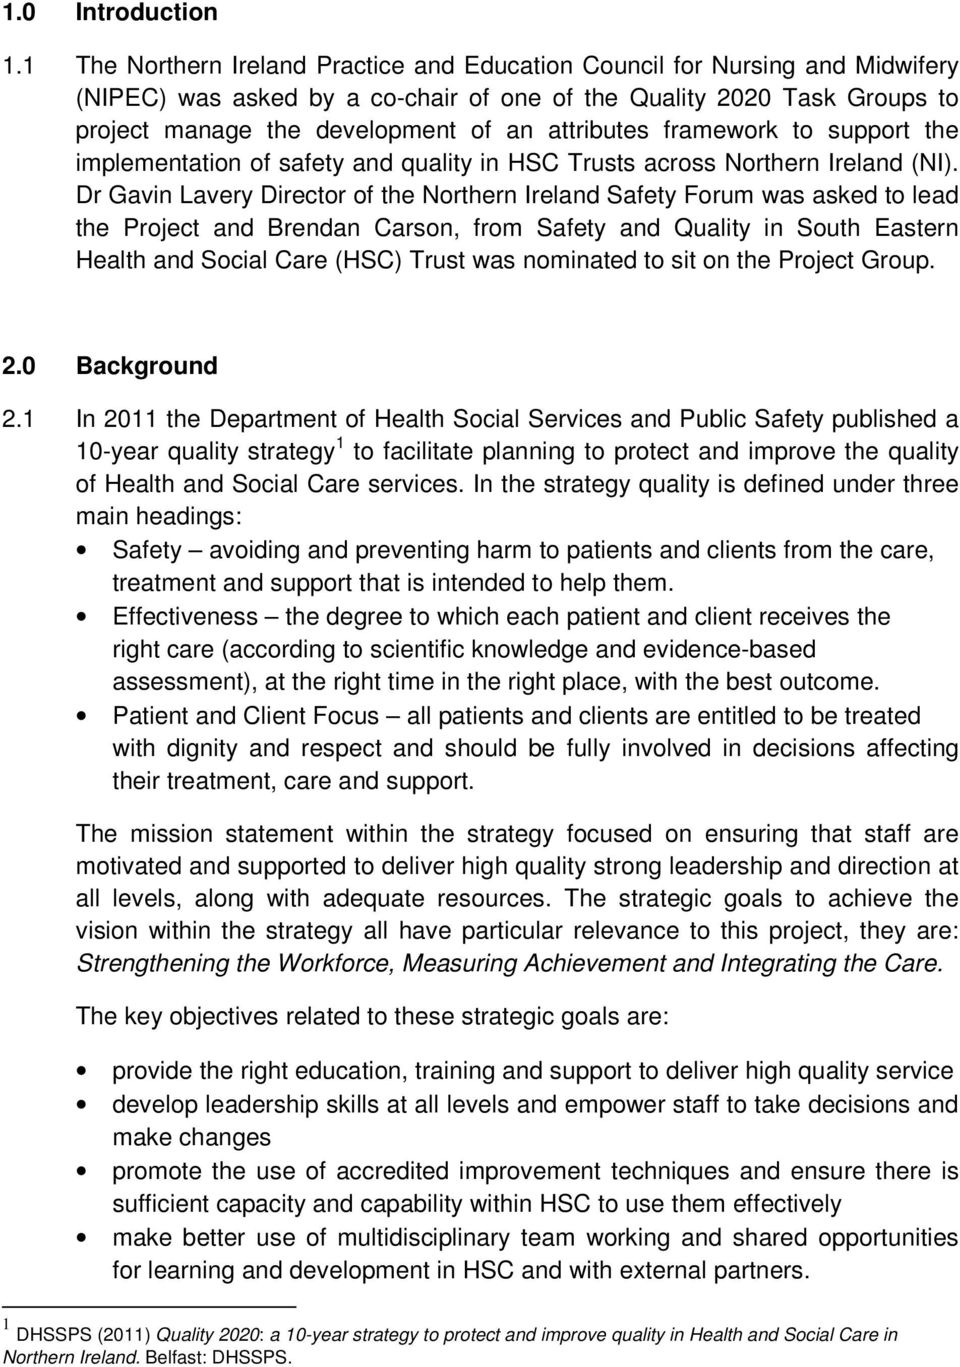 attributes framework to support the implementation of safety and quality in HSC Trusts across Northern Ireland (NI).